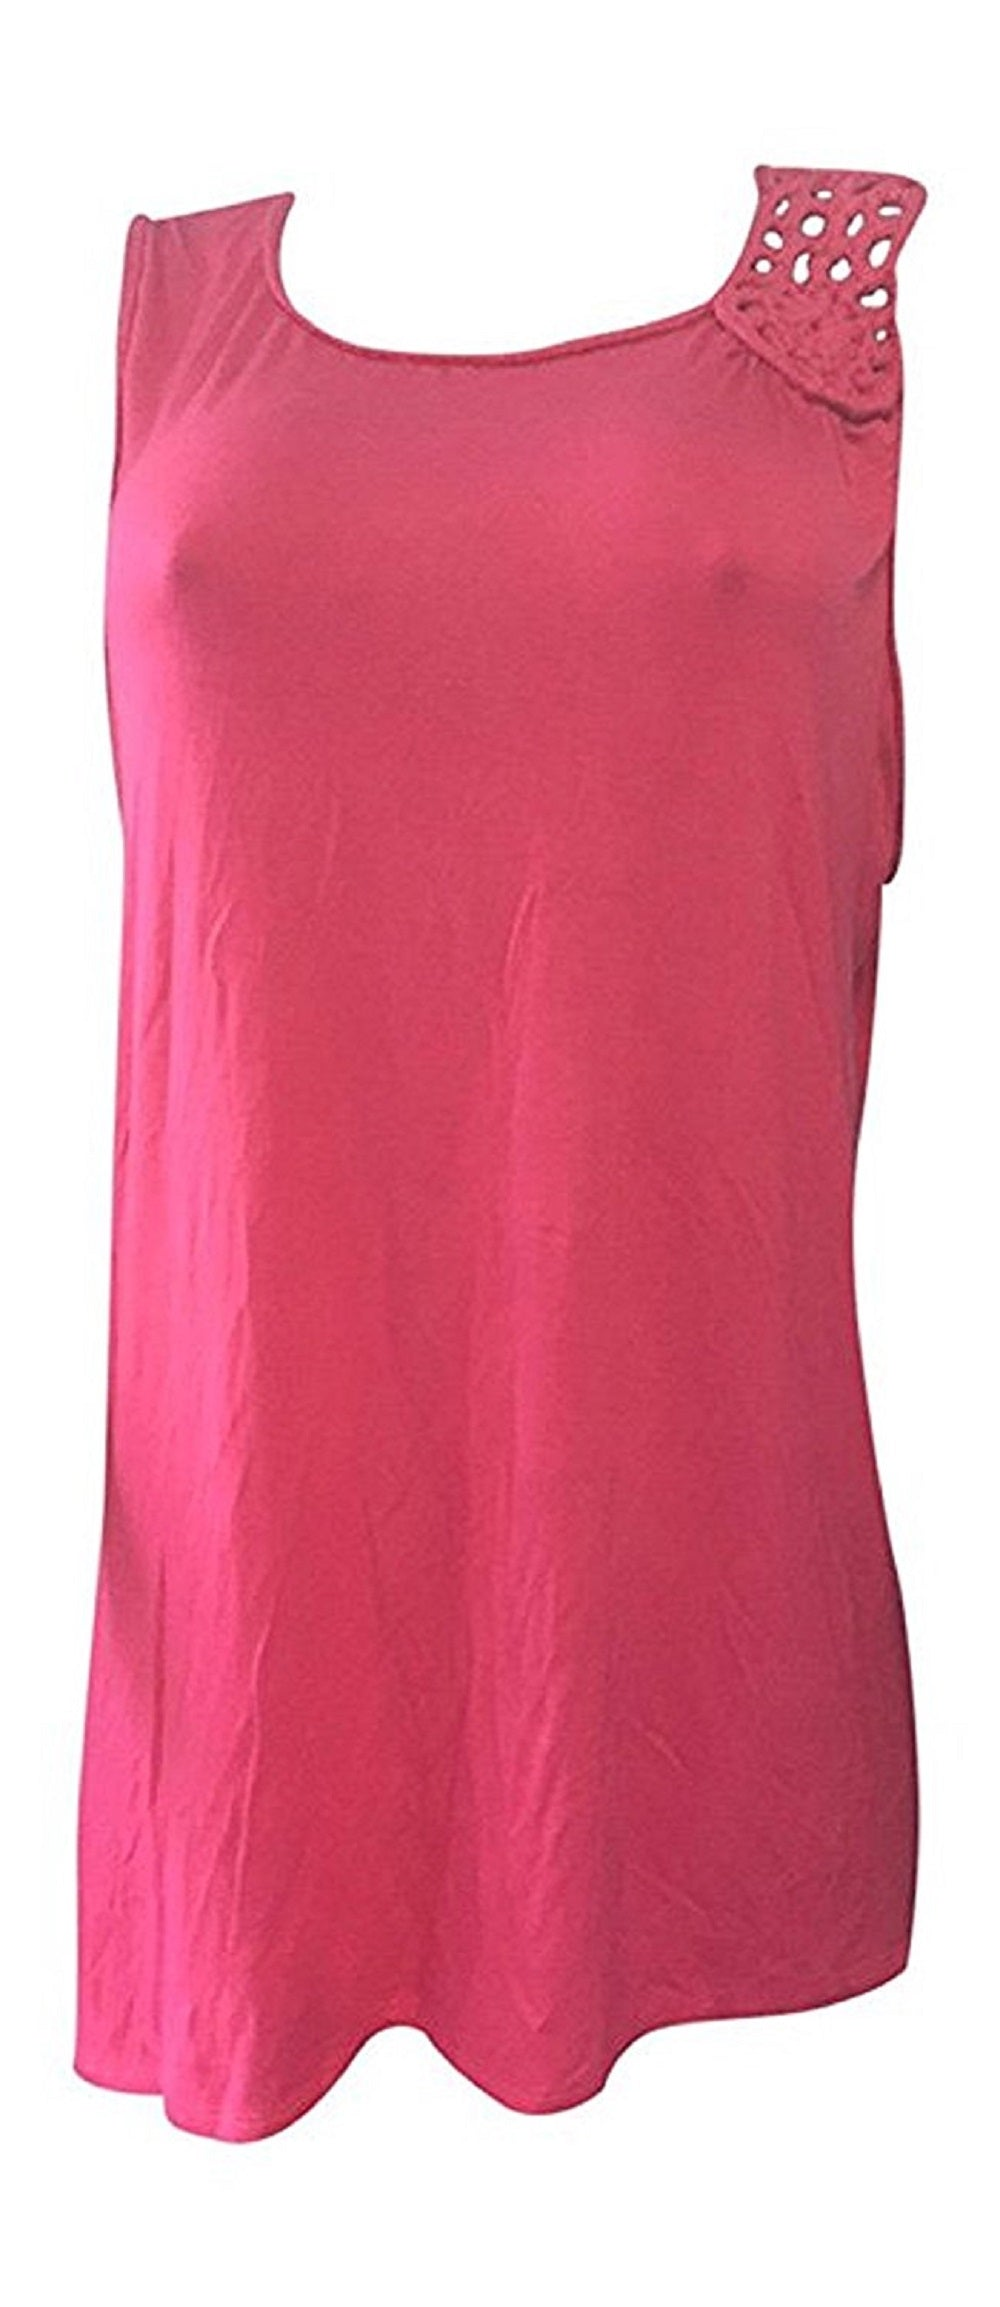 Premise Women's Tunic Top with Crochet Shoulder Trim, Pink Parfait